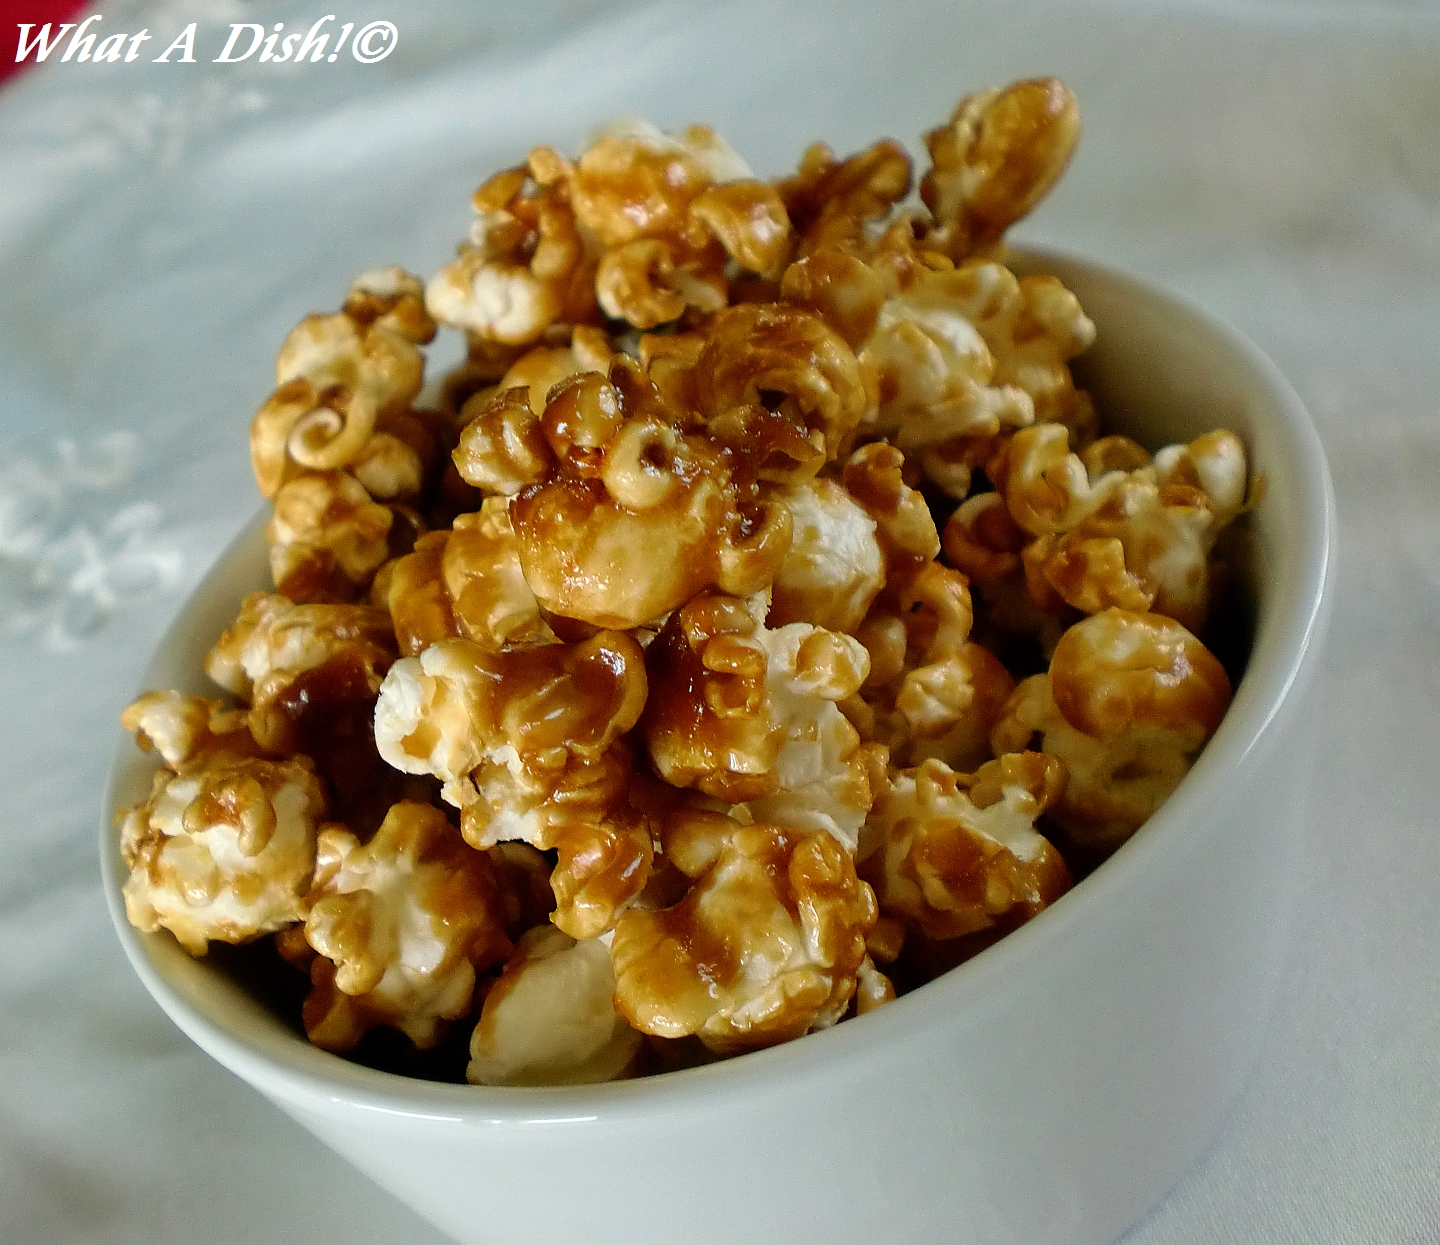 What A Dish!: Easy Caramel Corn